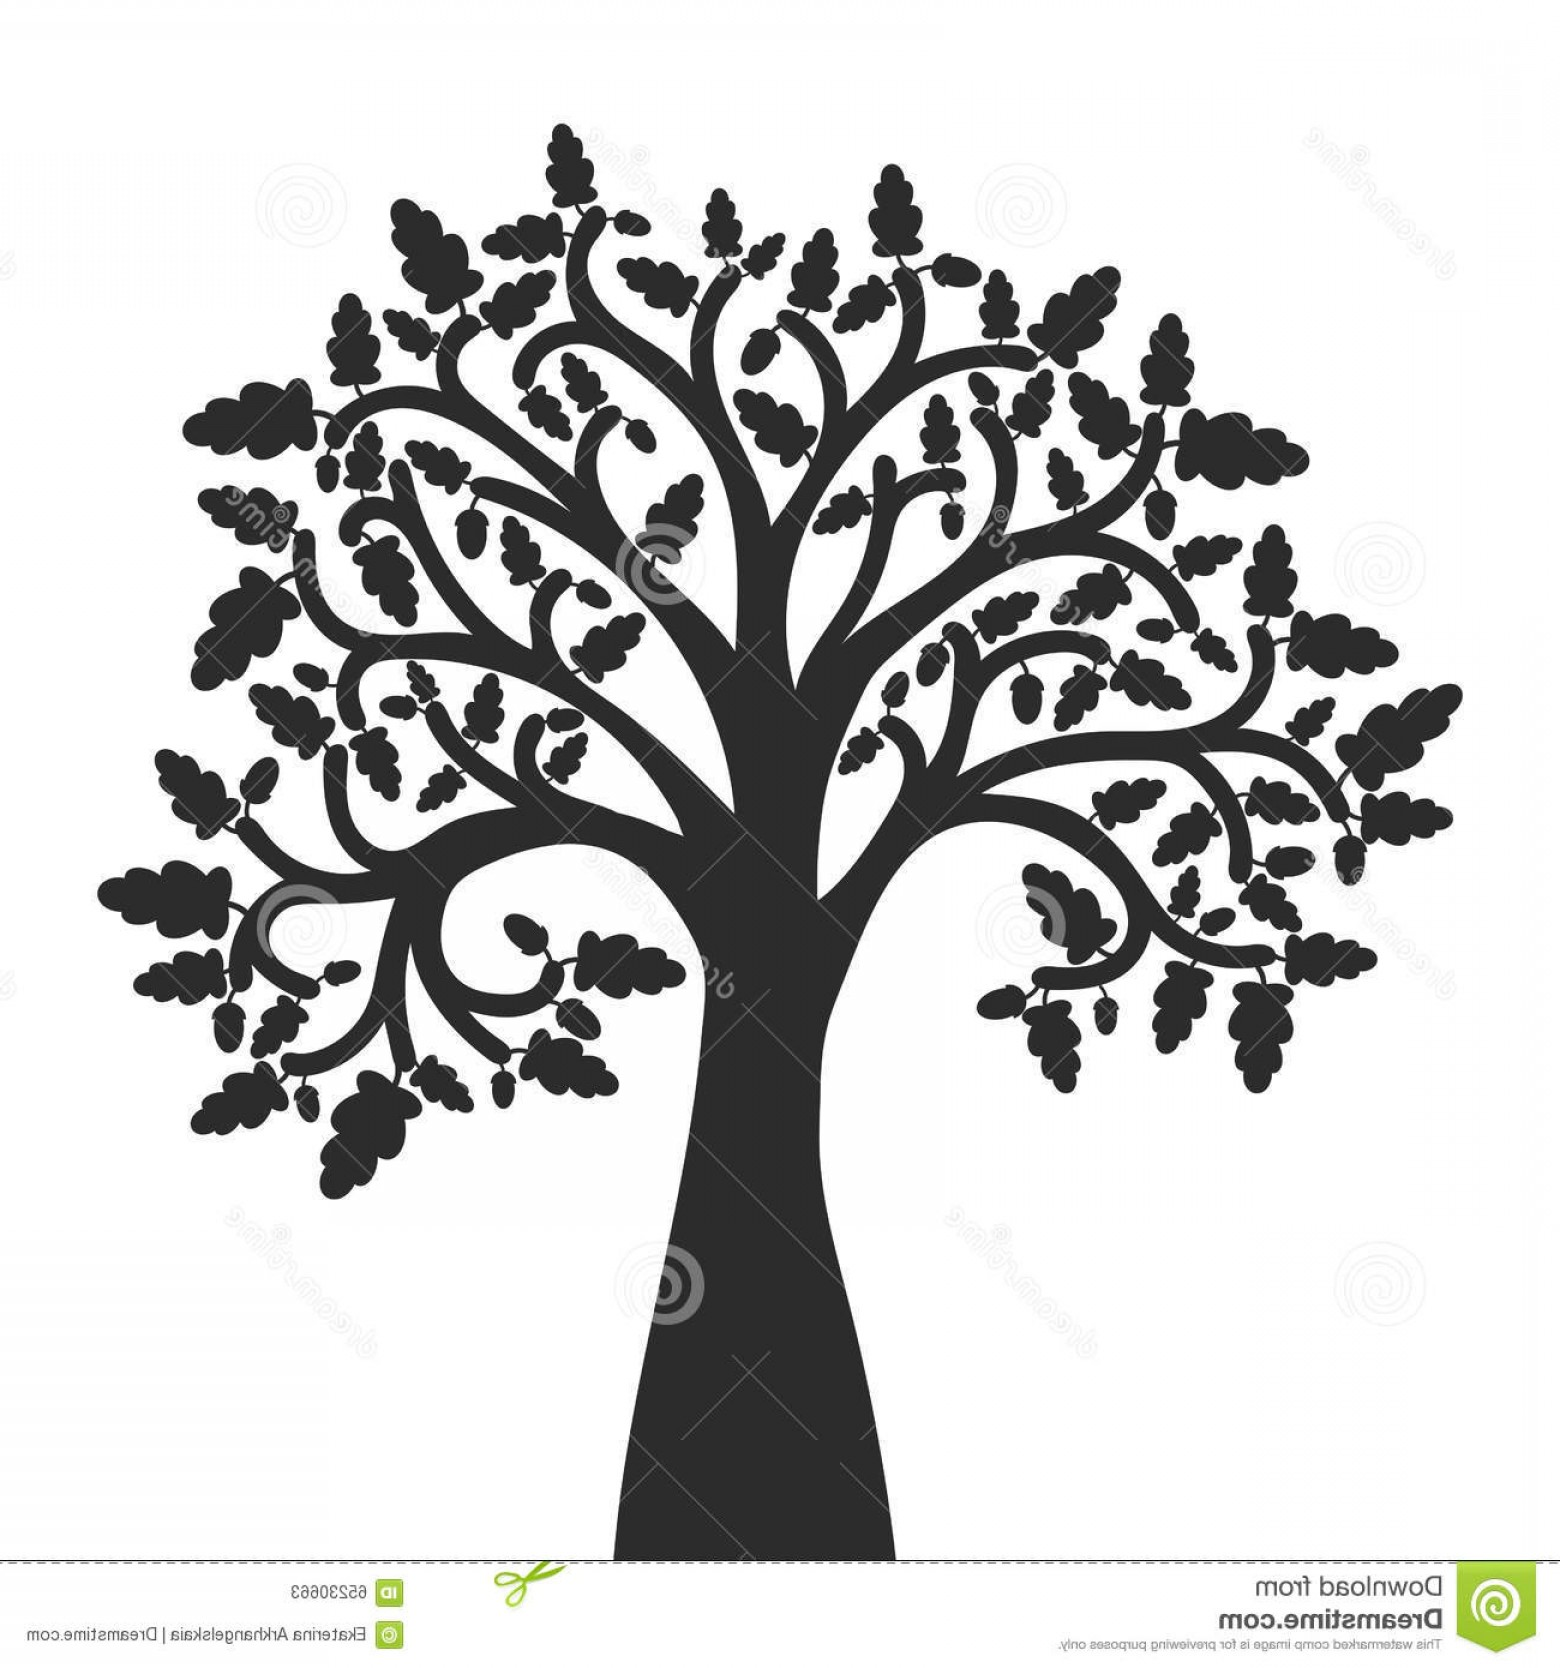 Oak Tree Silhouette Vector Graphics: Stock Illustration Silhouette Oak Tree Leaves Acorns Vector Illustration Image